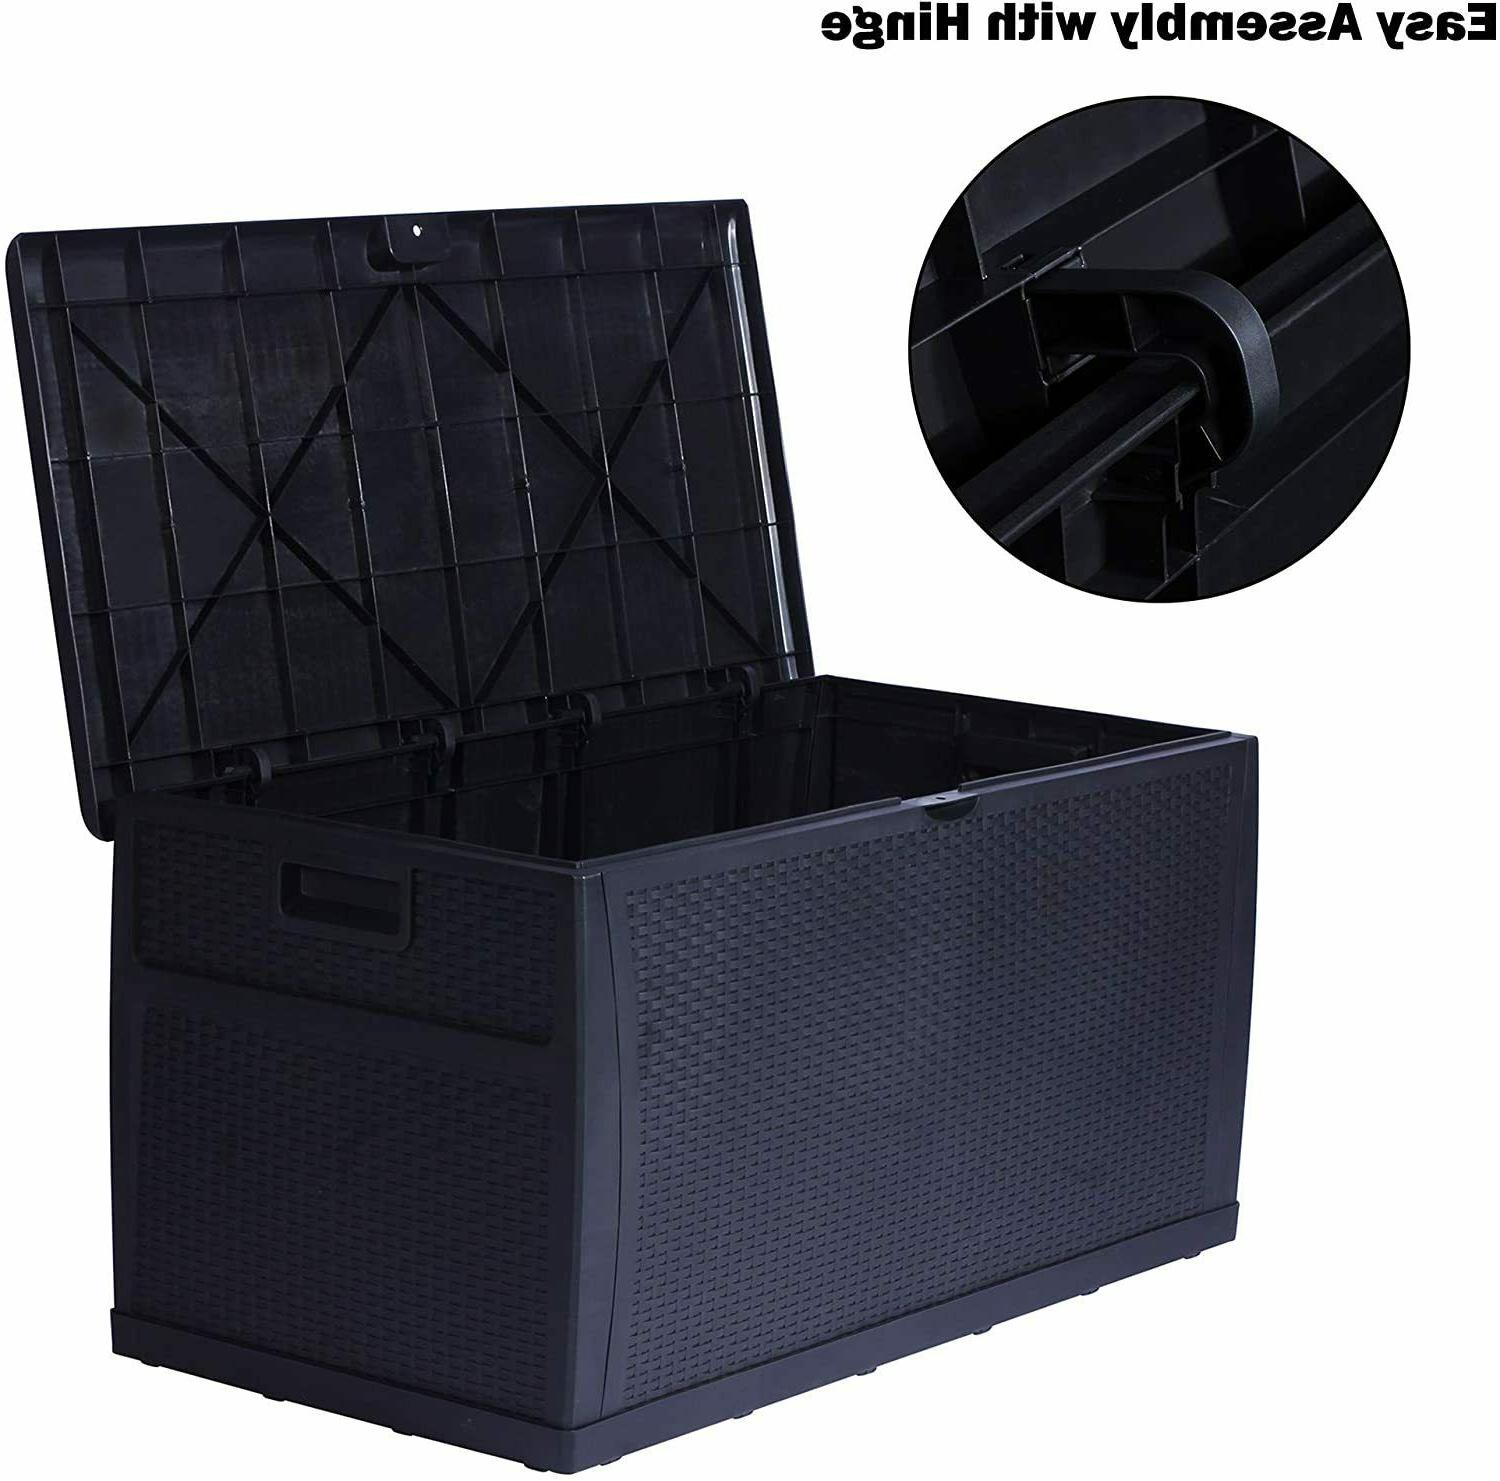 120 Gallon Rattan Effect Storage Cabinet Large Outdoor